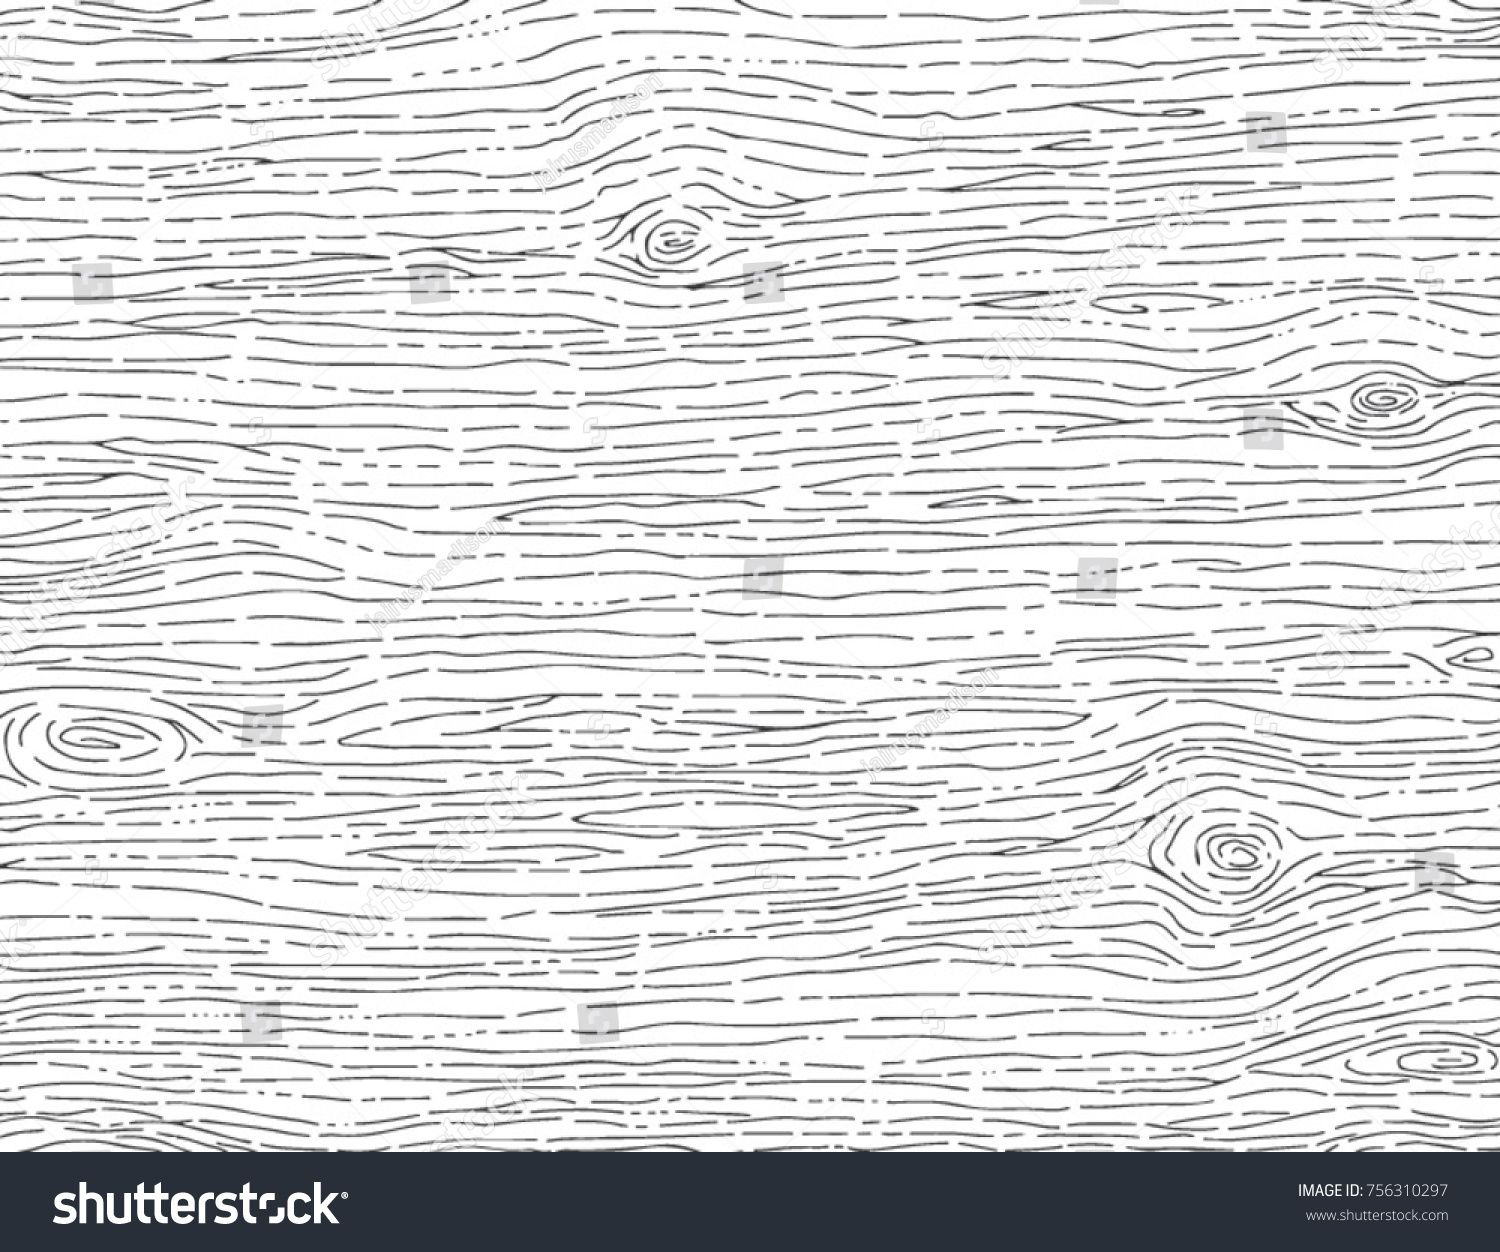 Hand Drawn Wood Pattern, Wood Texture Background Vector #Sponsored , #Affiliate, #Wood#Drawn#Hand#Pattern #woodtexturebackground